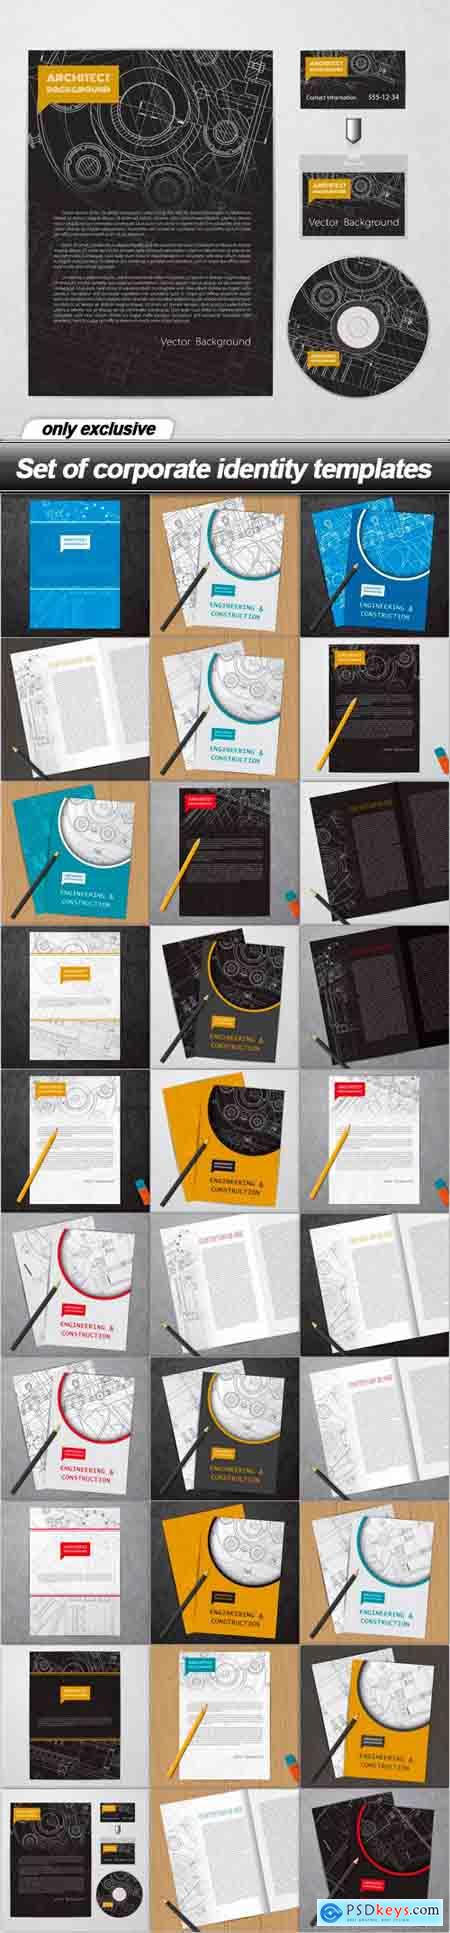 Set of corporate identity templates - 30 EPS